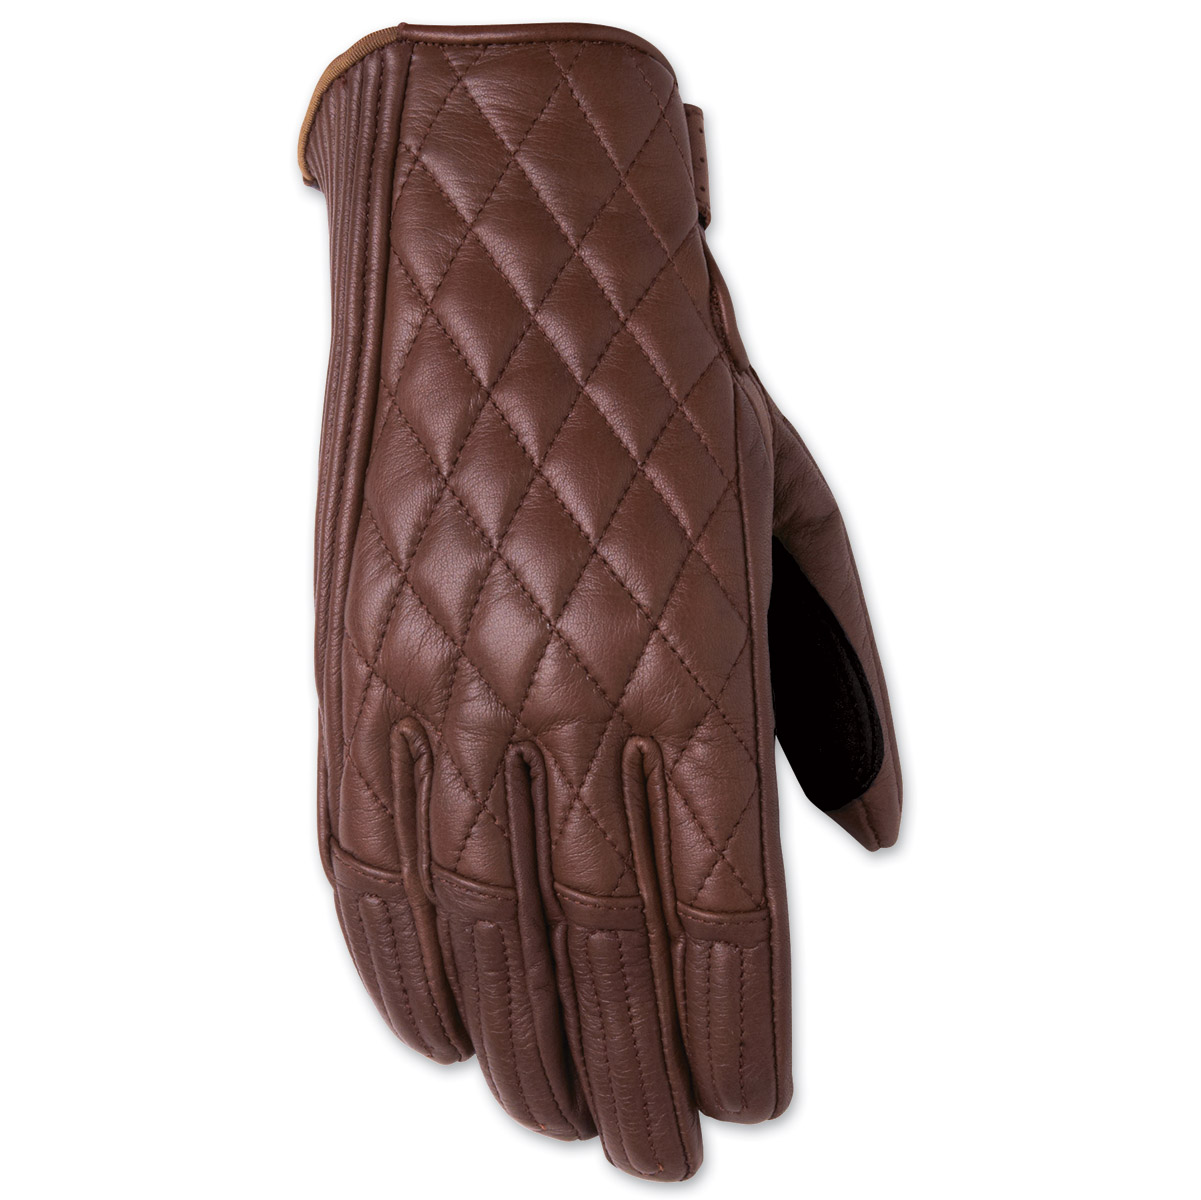 More Details Guanti Giglio Fiorentino Three-Cord Napa Leather Gloves Details Guanti Giglio Fiorentino gloves in napa lambskin leather. Three-point stitching on back of hand. Cashmere lining. Made in Italy. To determine your glove size, measure the circumference of .